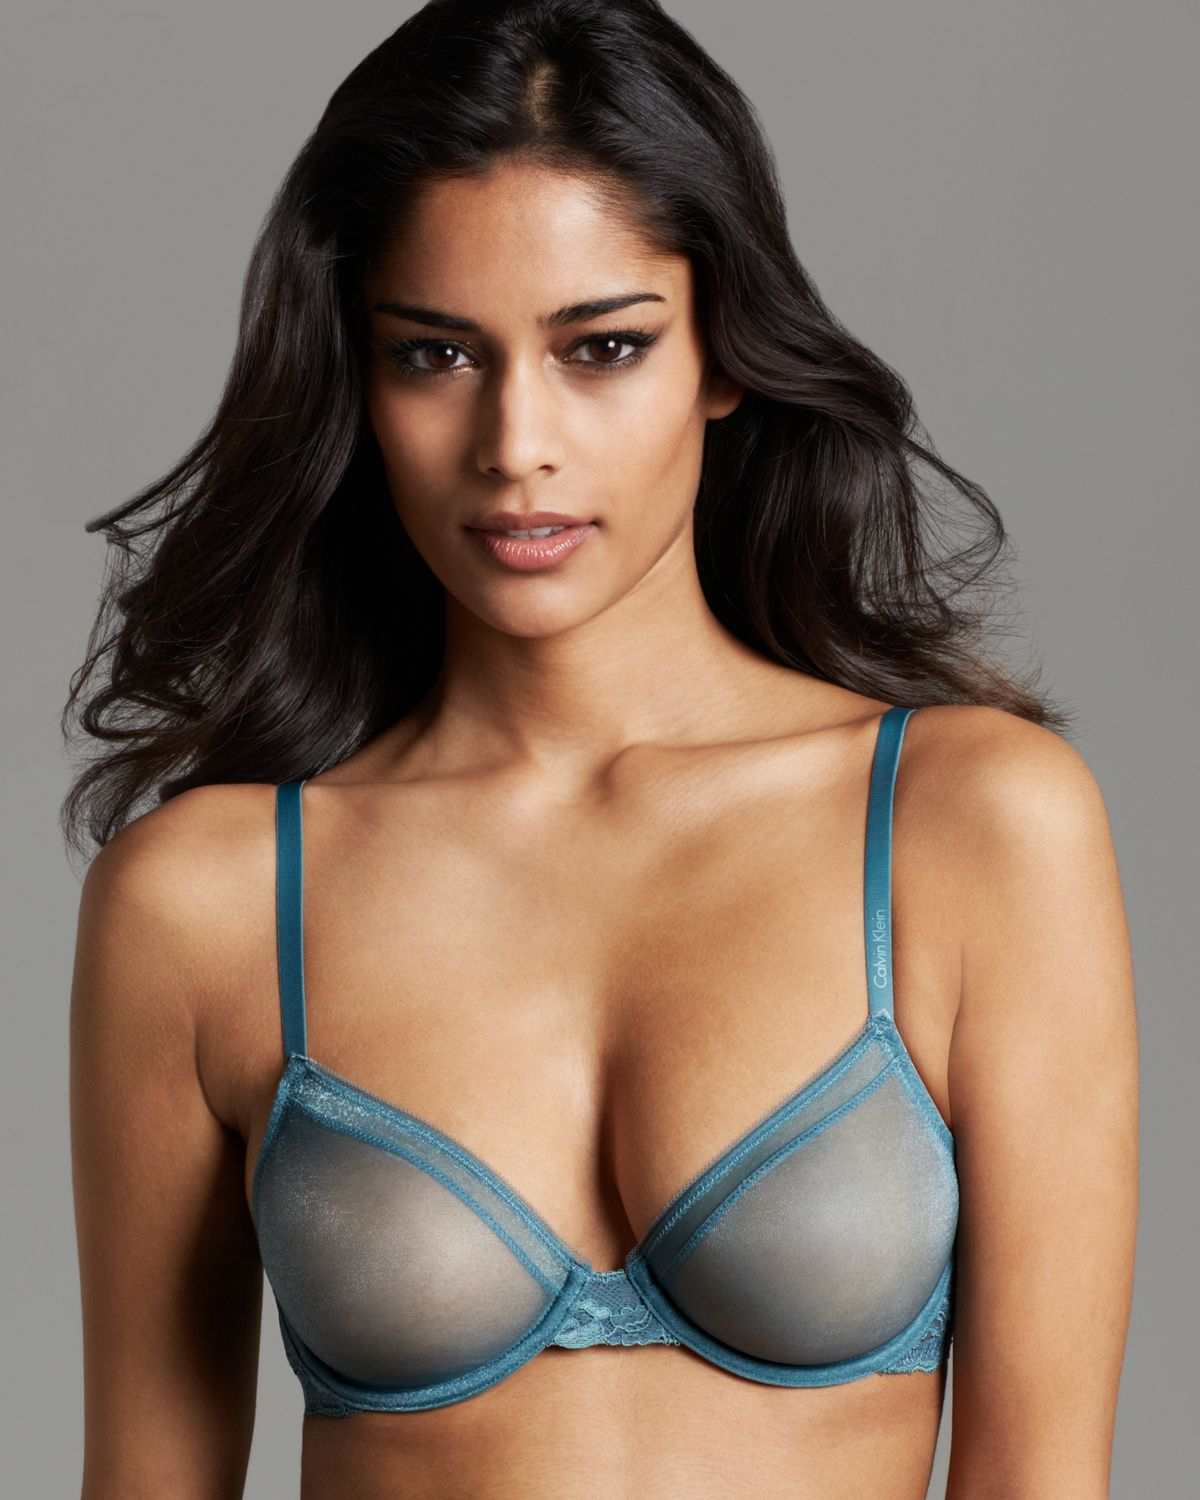 cfbe348af28c8 Lyst - Calvin Klein Bra Luster Bare Unlined Underwire in Blue